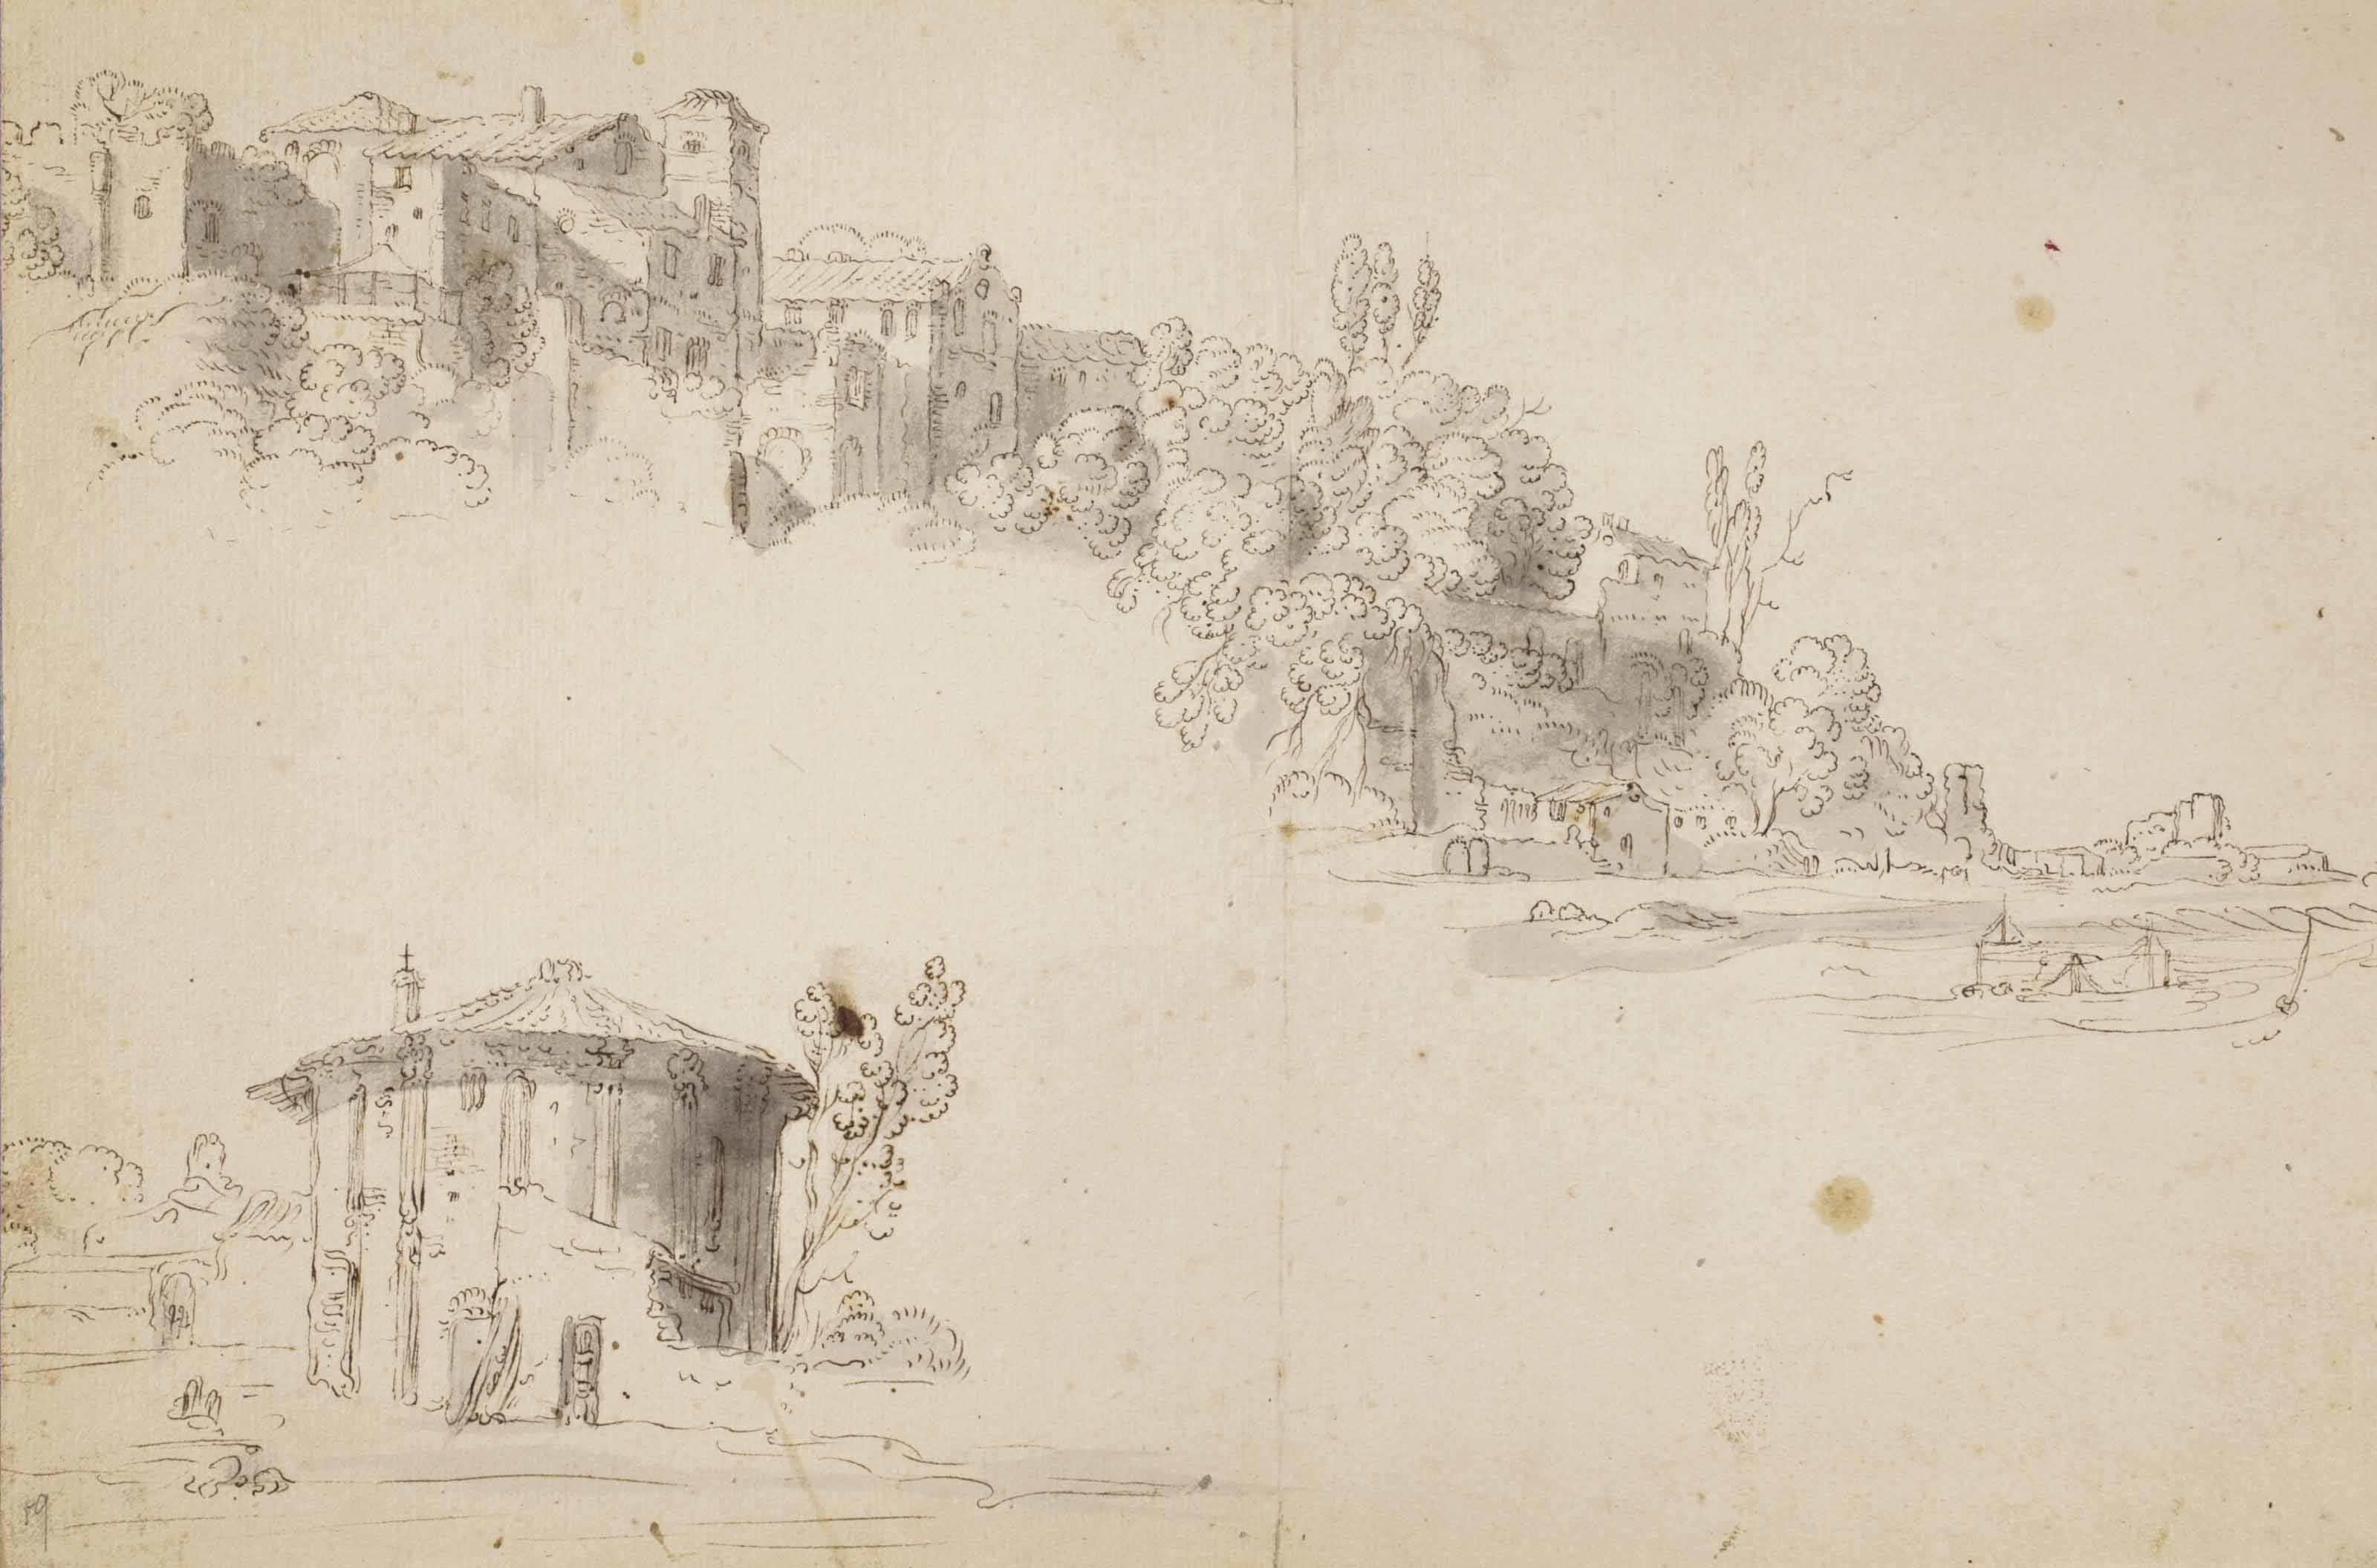 View of buildings on a hillside, with a subsidiary study of the Temple of Vesta, Rome